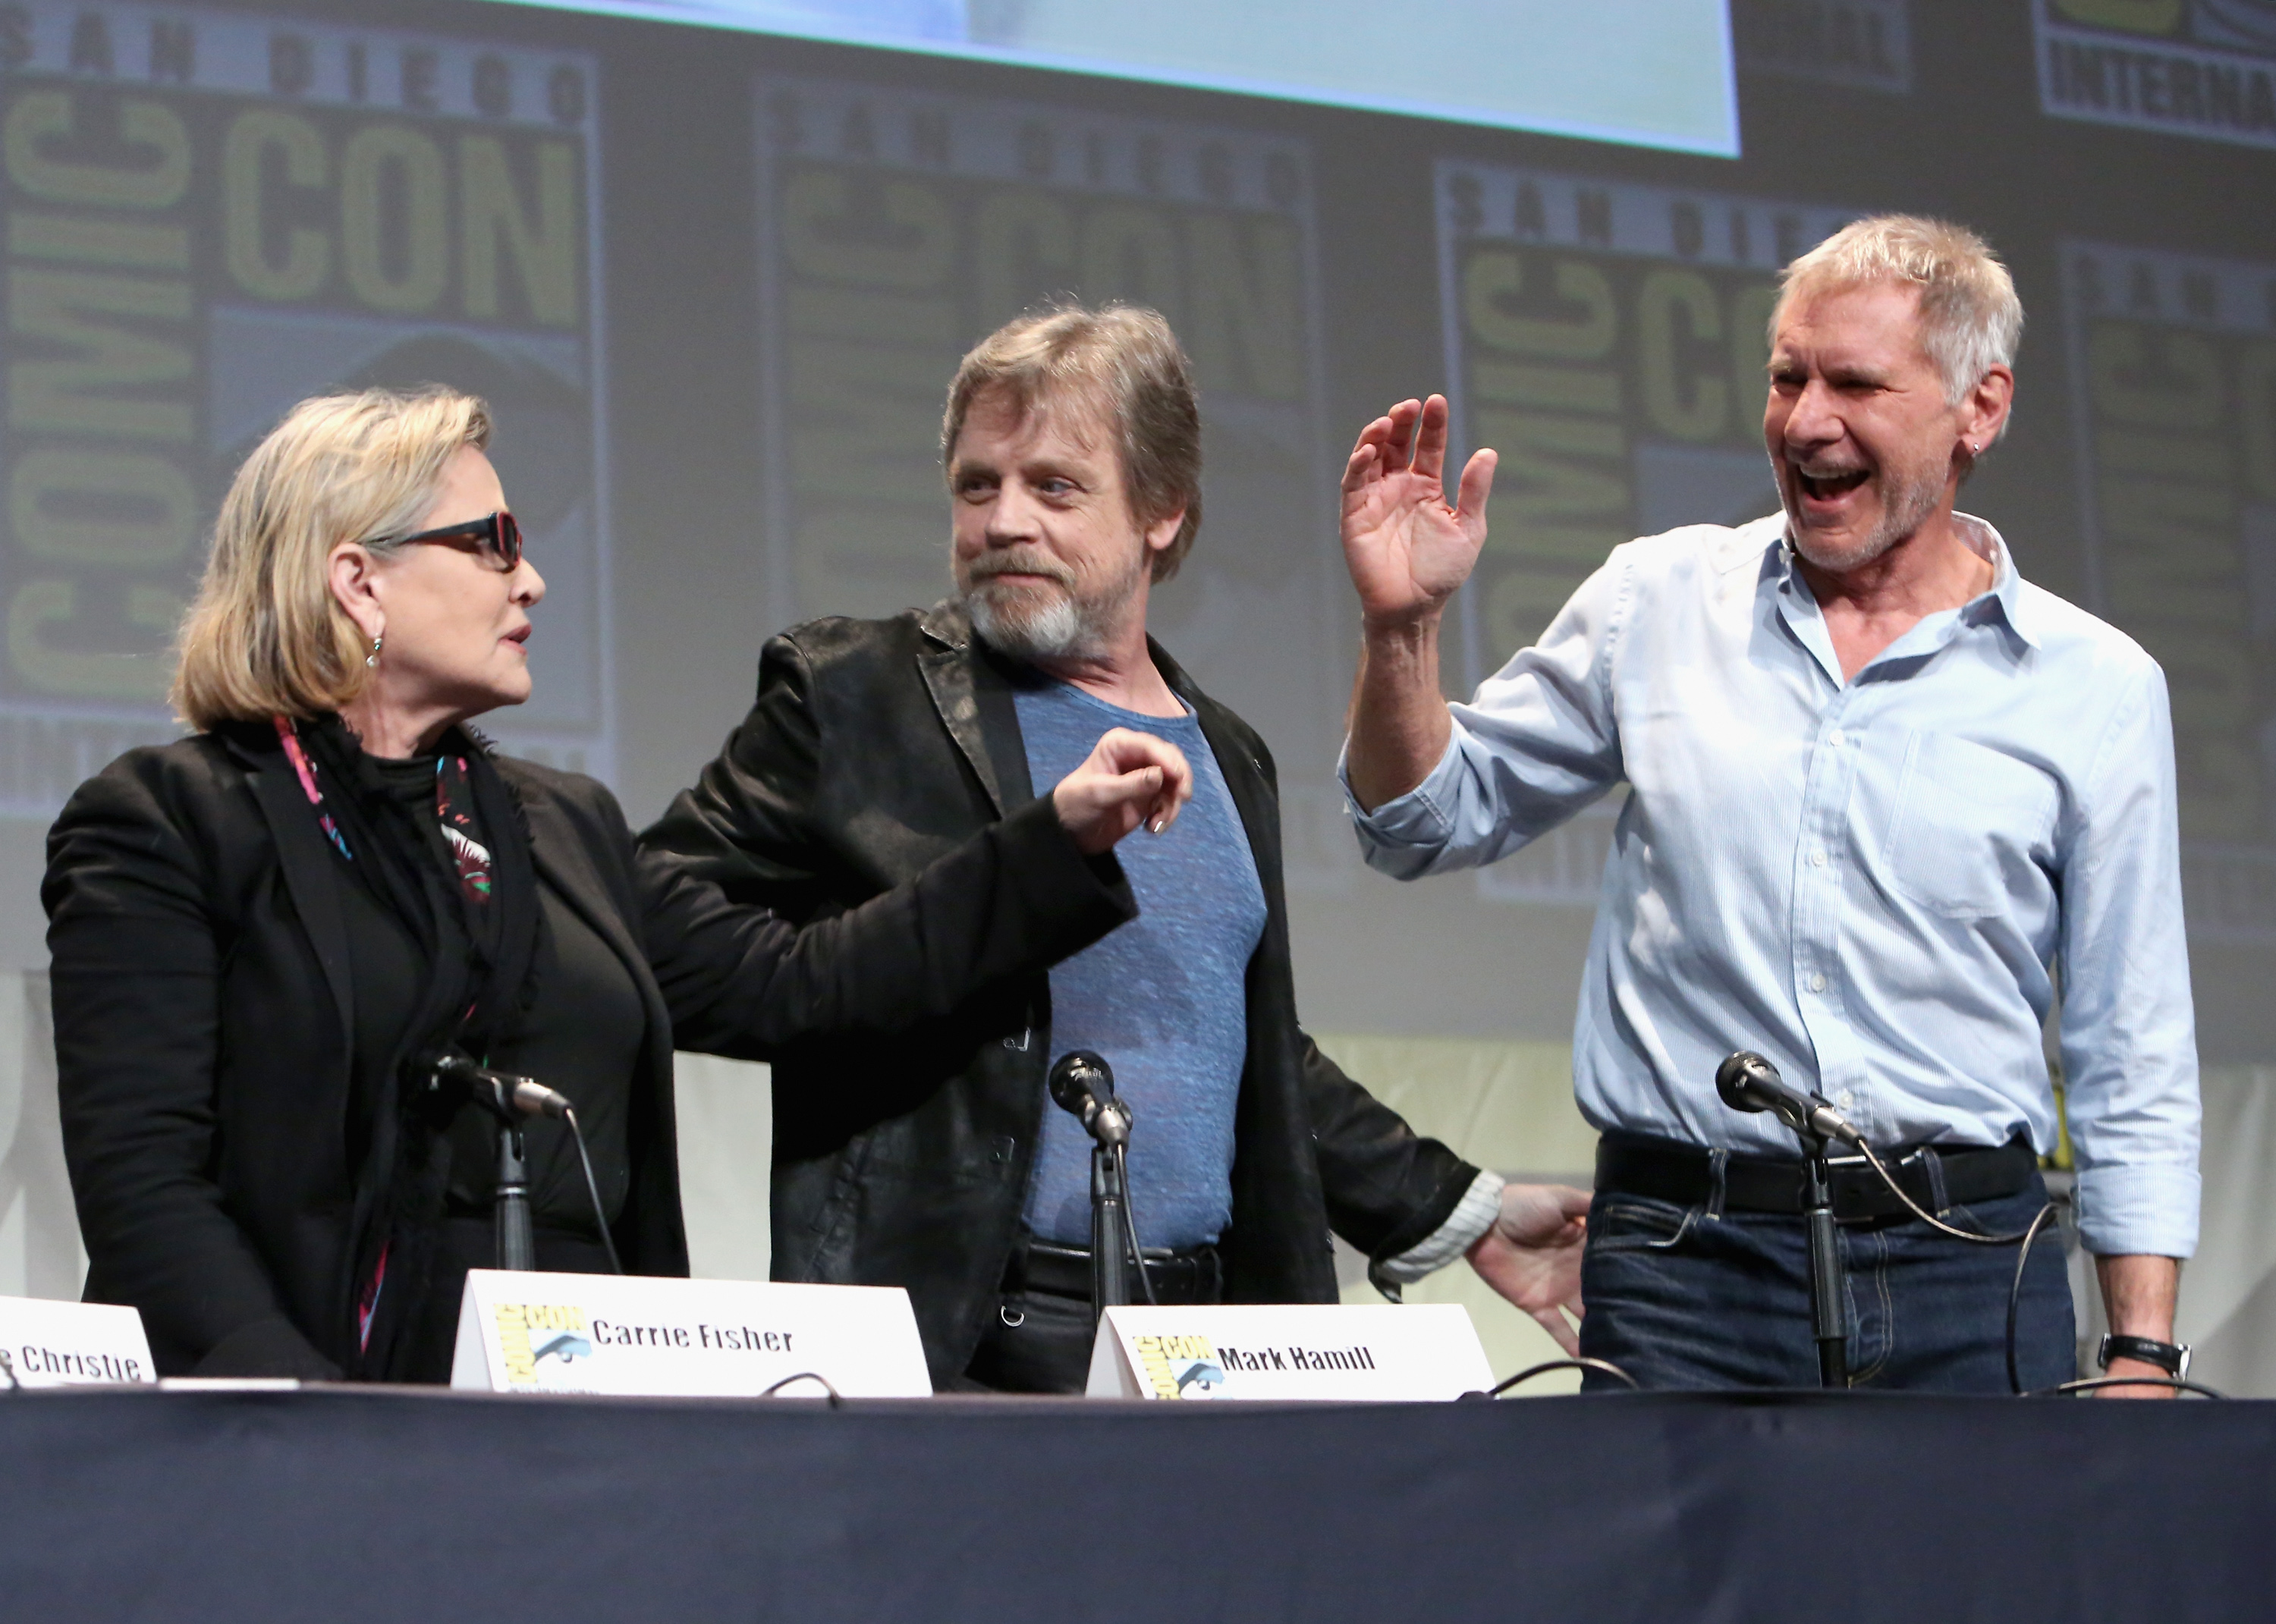 Carrie Fisher, Mark Hamill & Harrison Ford @ The Force Awakens Panel